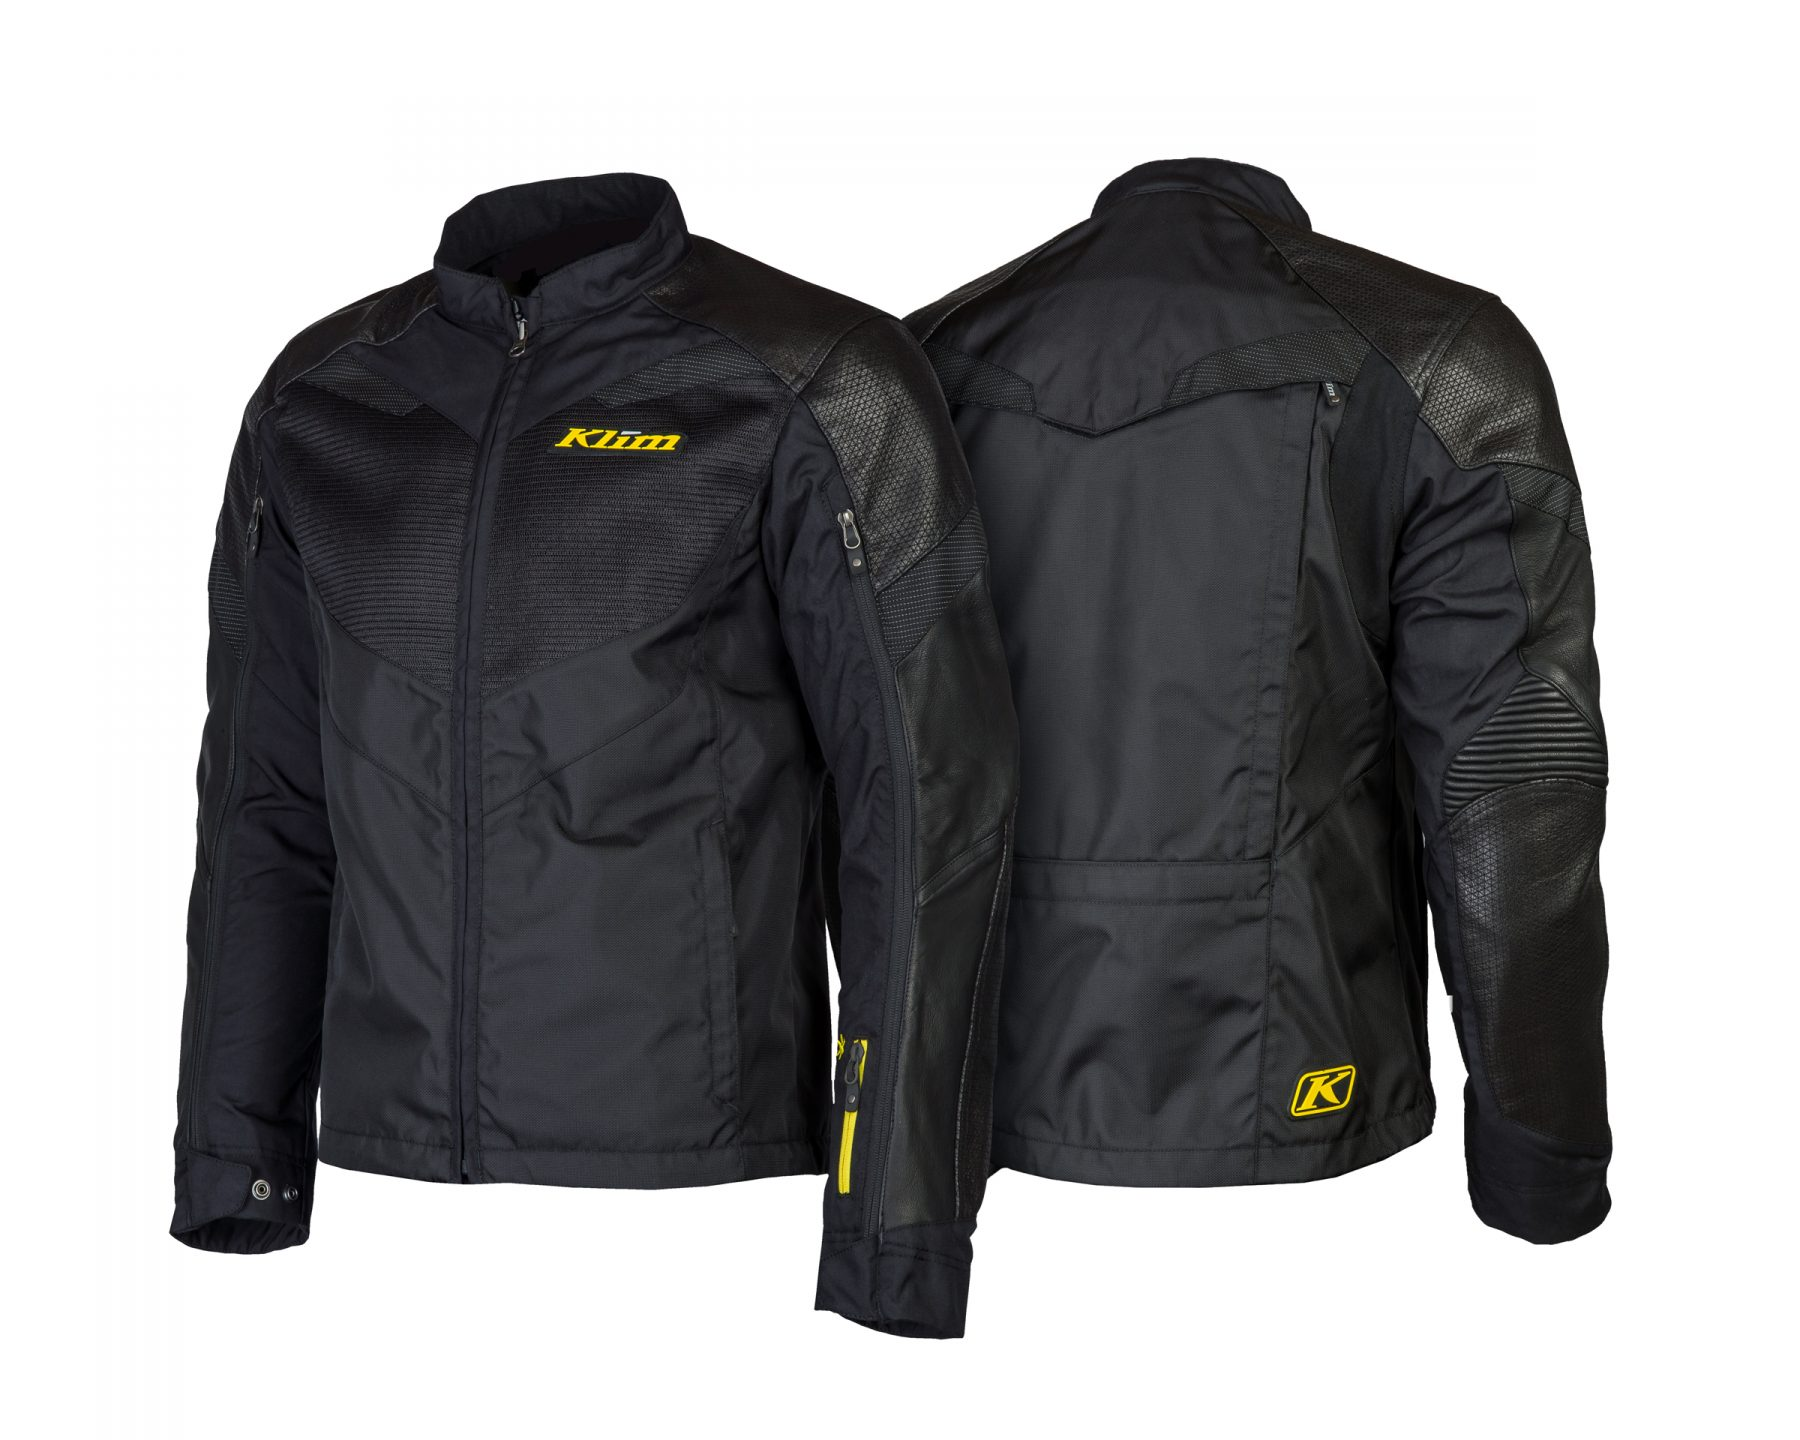 S Apex Air Jacket 5062-000-500_03